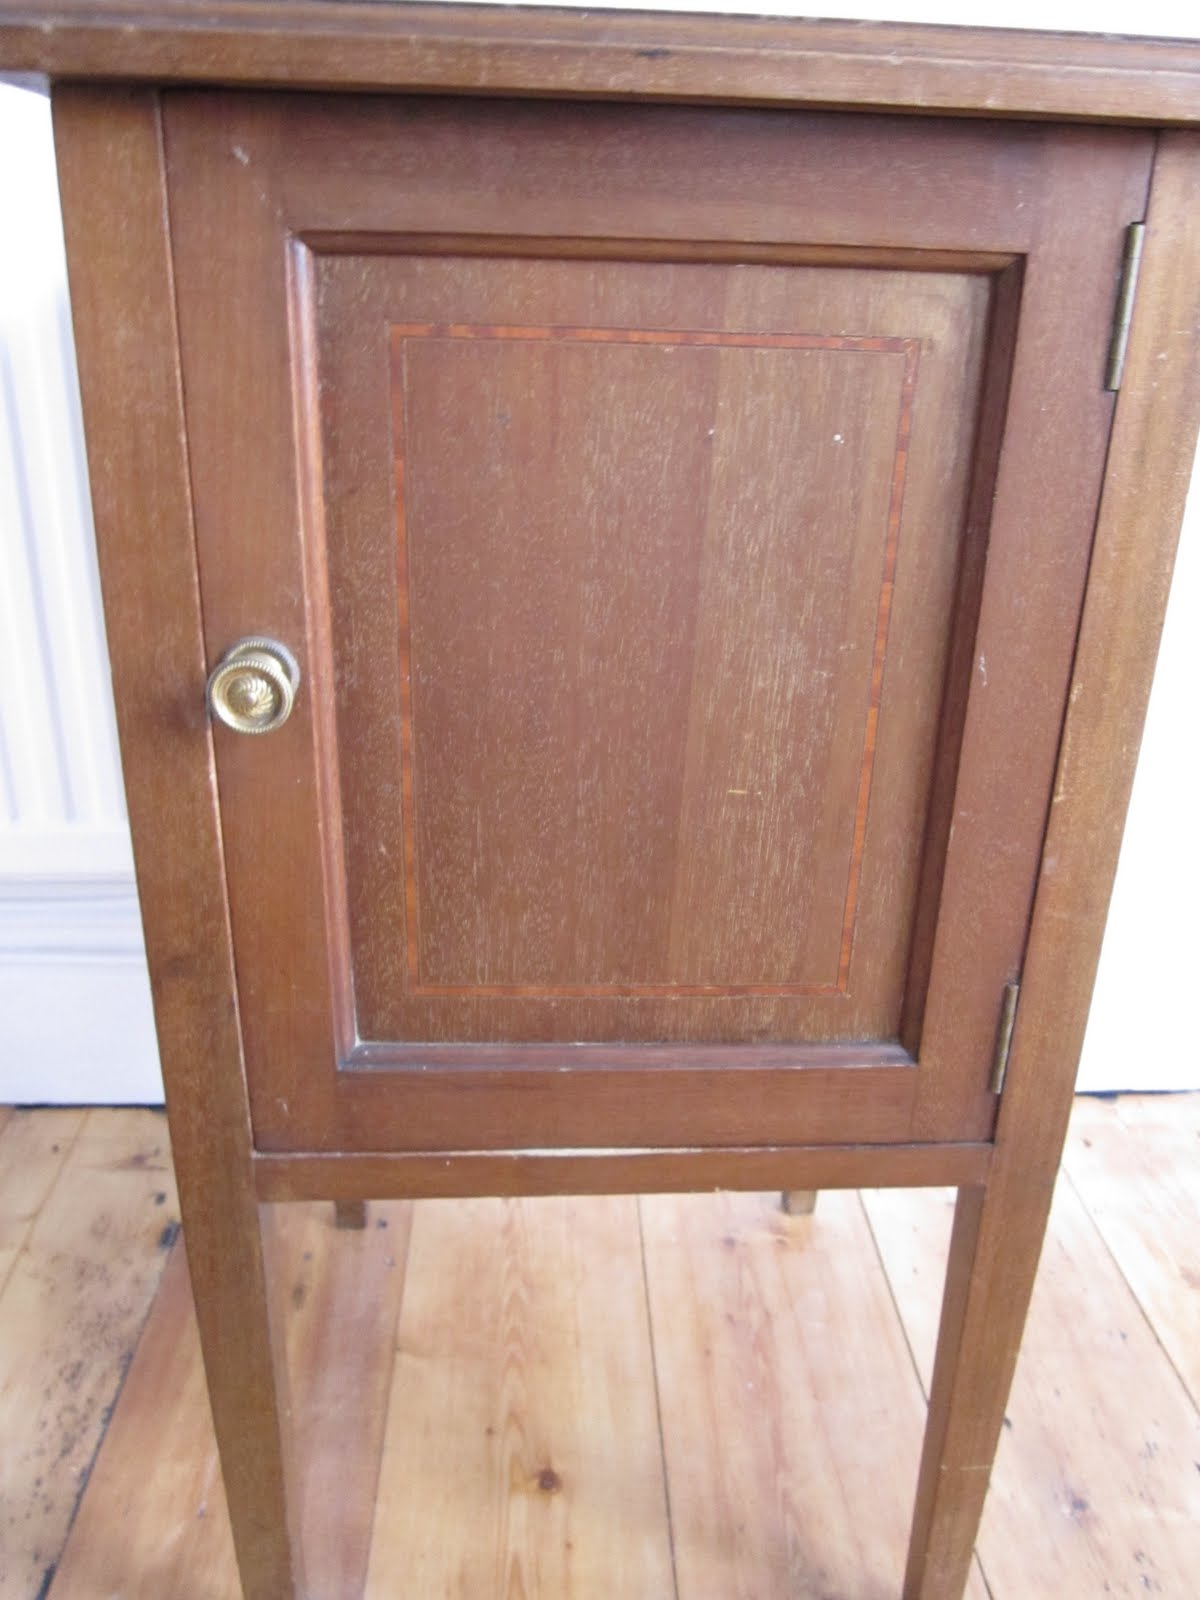 ... niall and mitch got hitched: Refurbishing Antique Wood Furniture - How To Clean Antique Wood Furniture Pallet Furniture Ideas